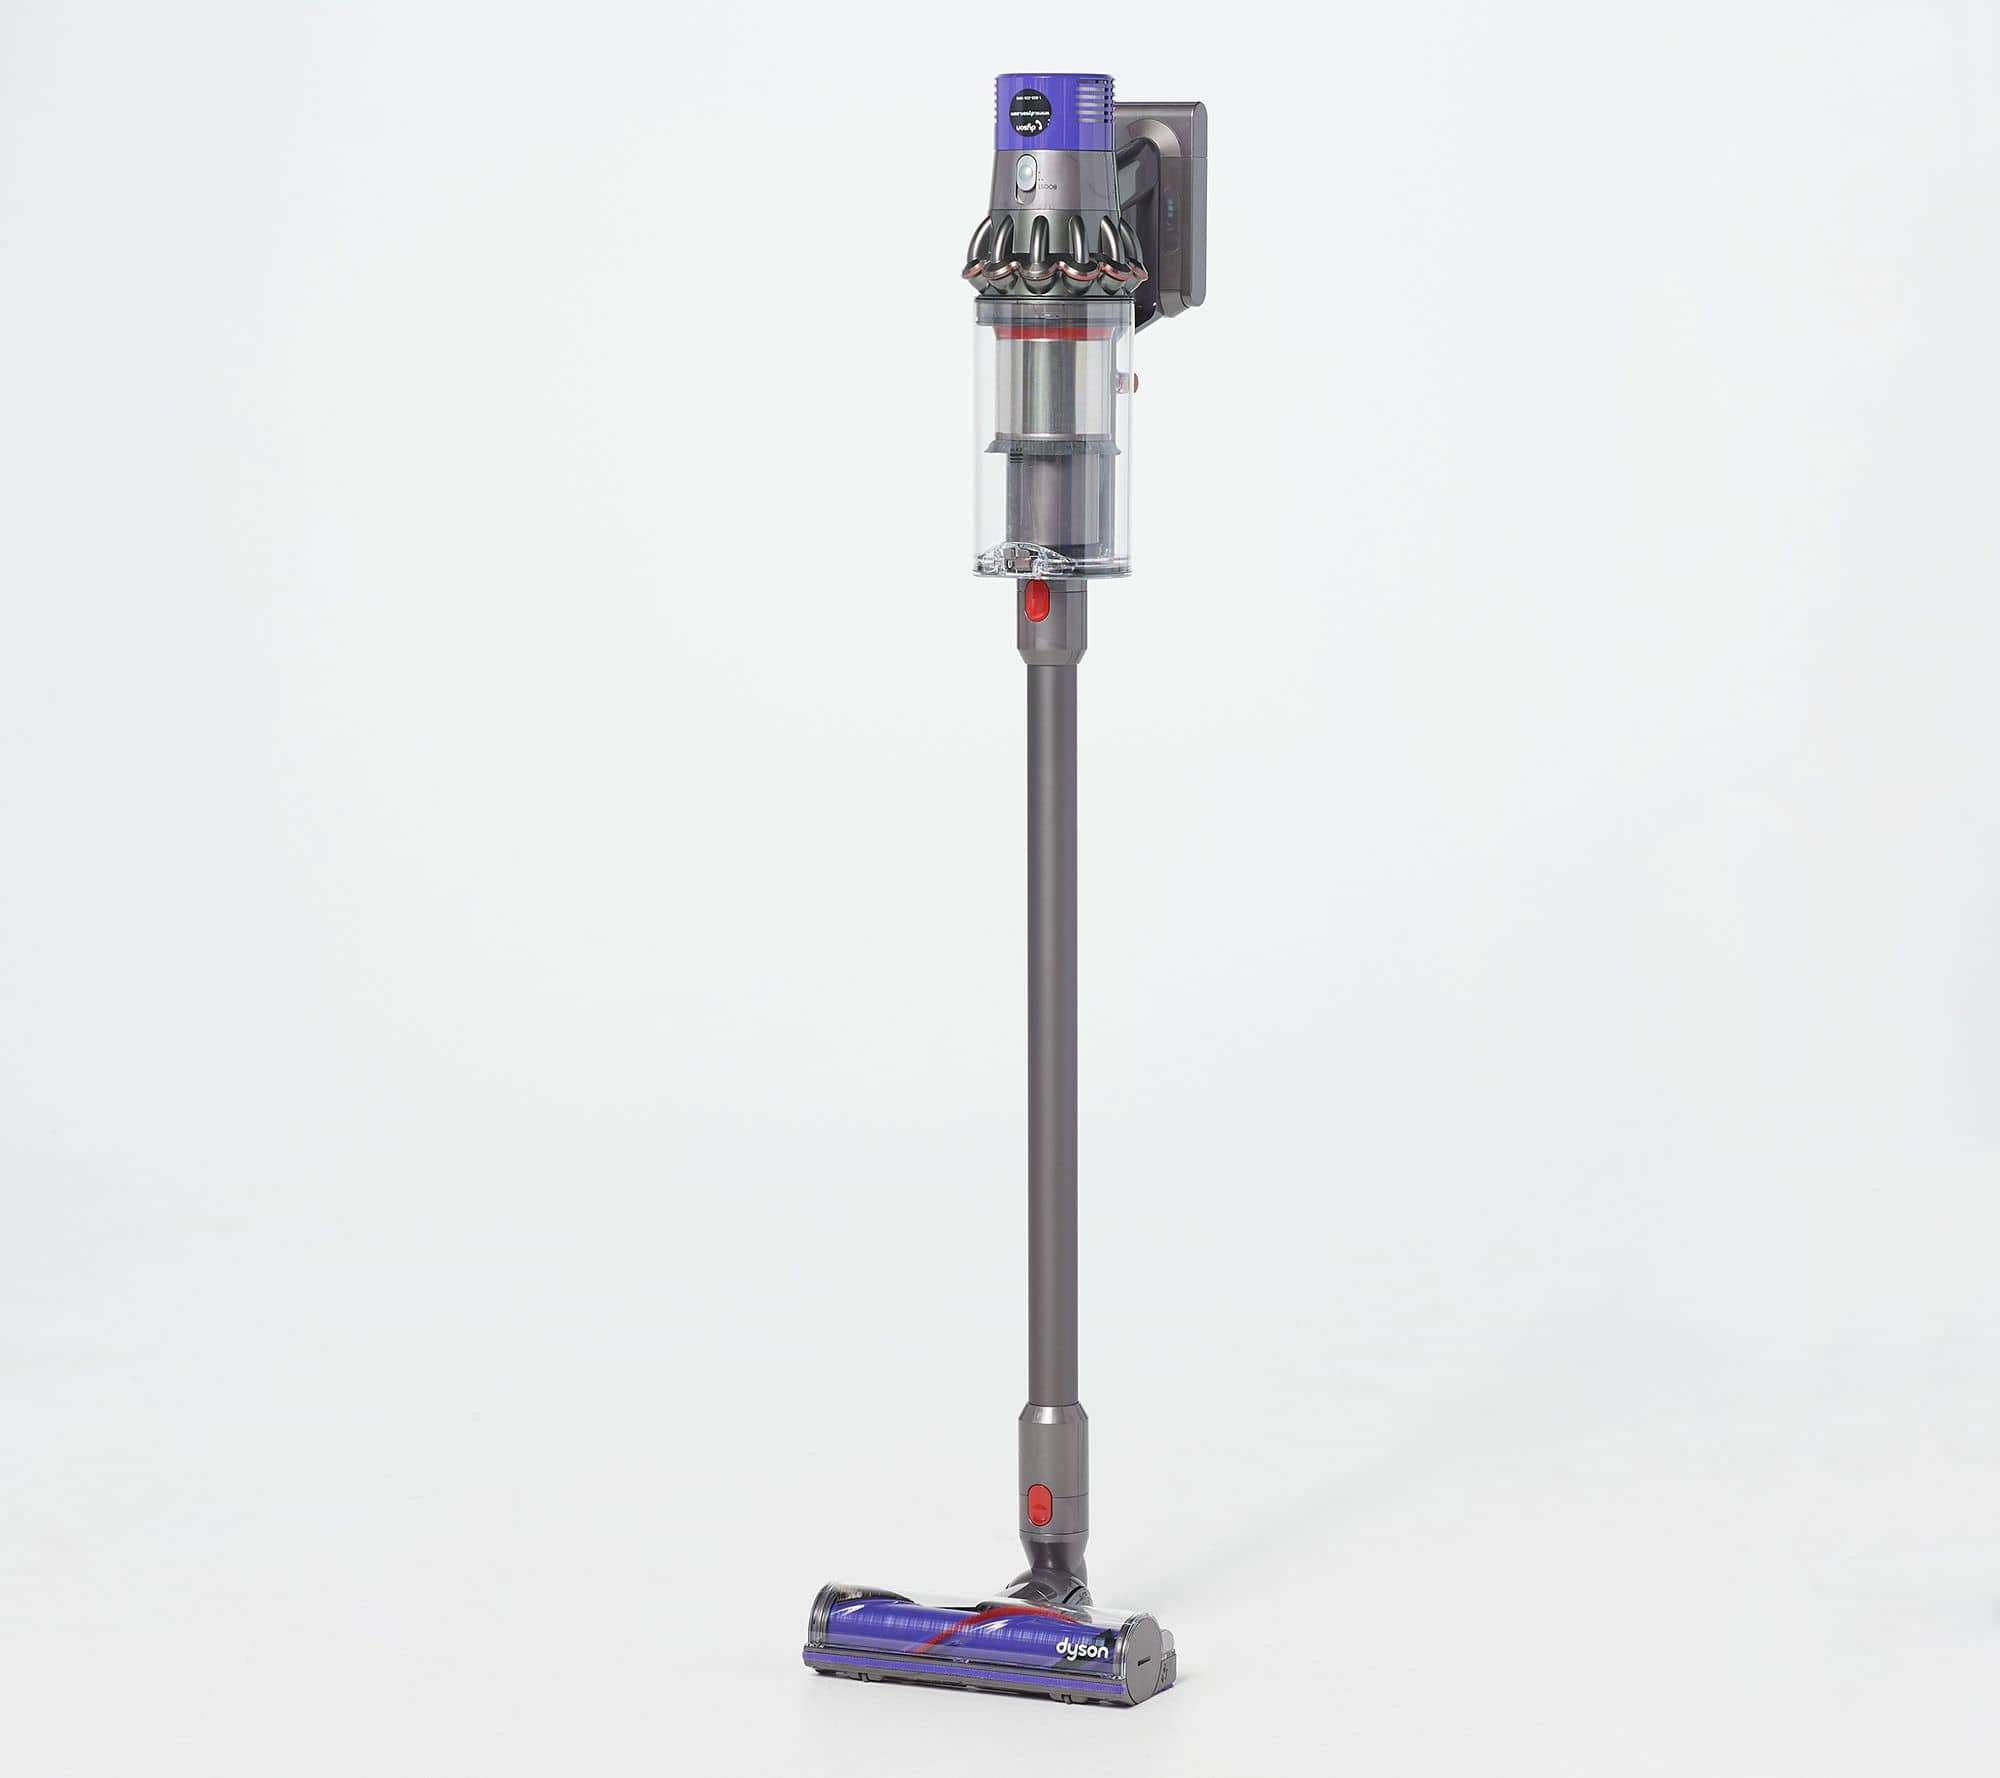 Dyson Cyclone V10 Absolute Pro Cordfree Vacuum with 9 Tools $499.96